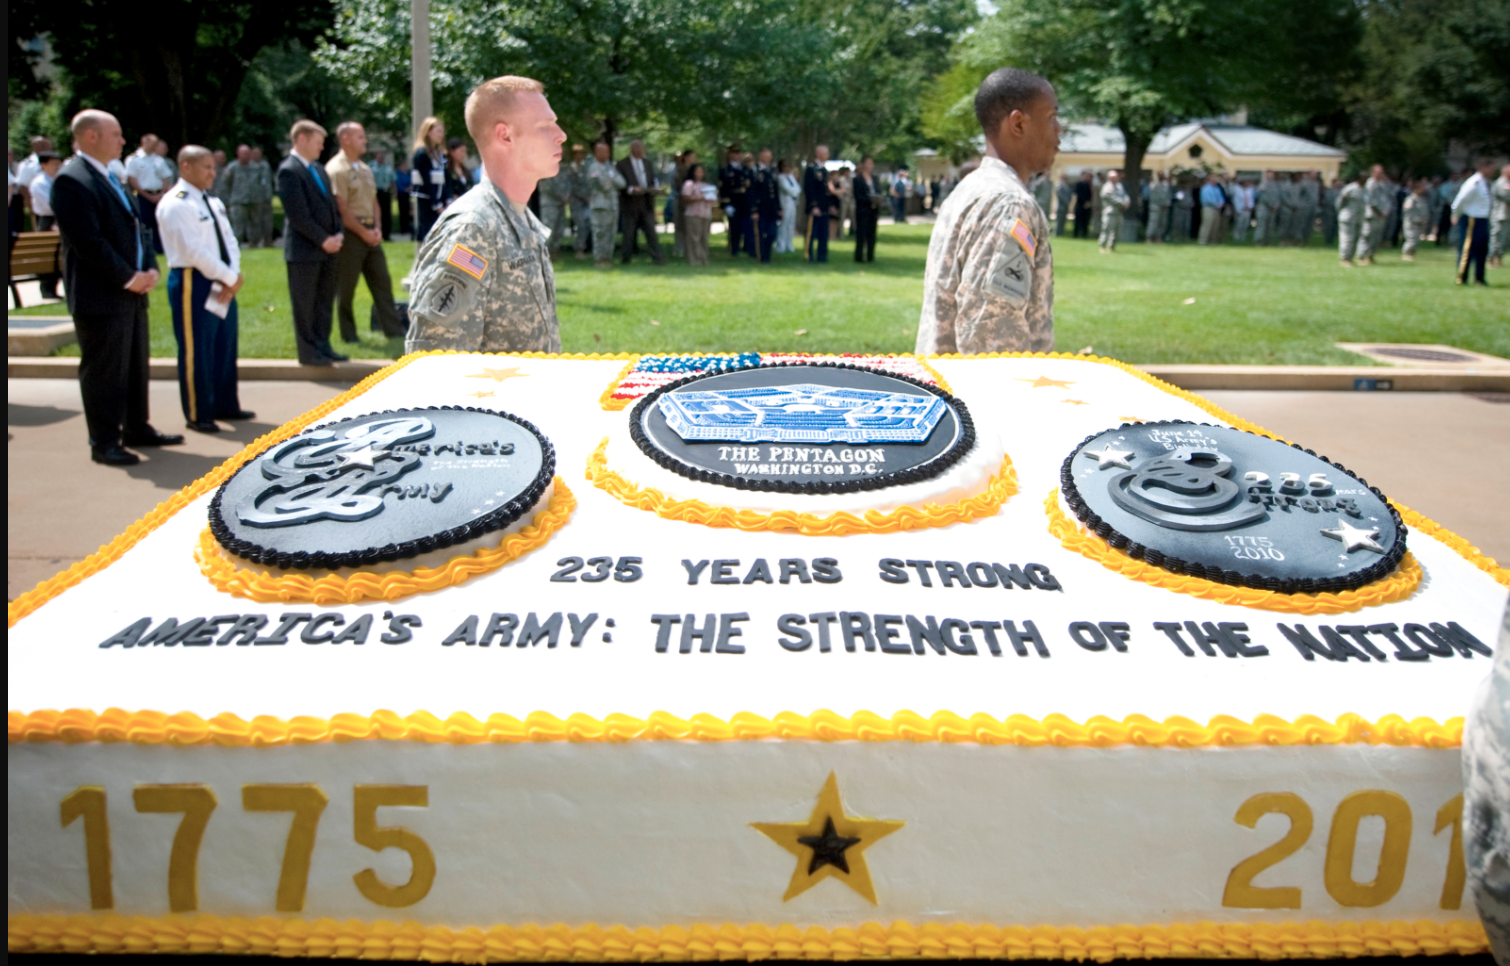 Magnificent U S Army Birthday Cakes Revisitedthe Sitrep Military Blog Funny Birthday Cards Online Bapapcheapnameinfo